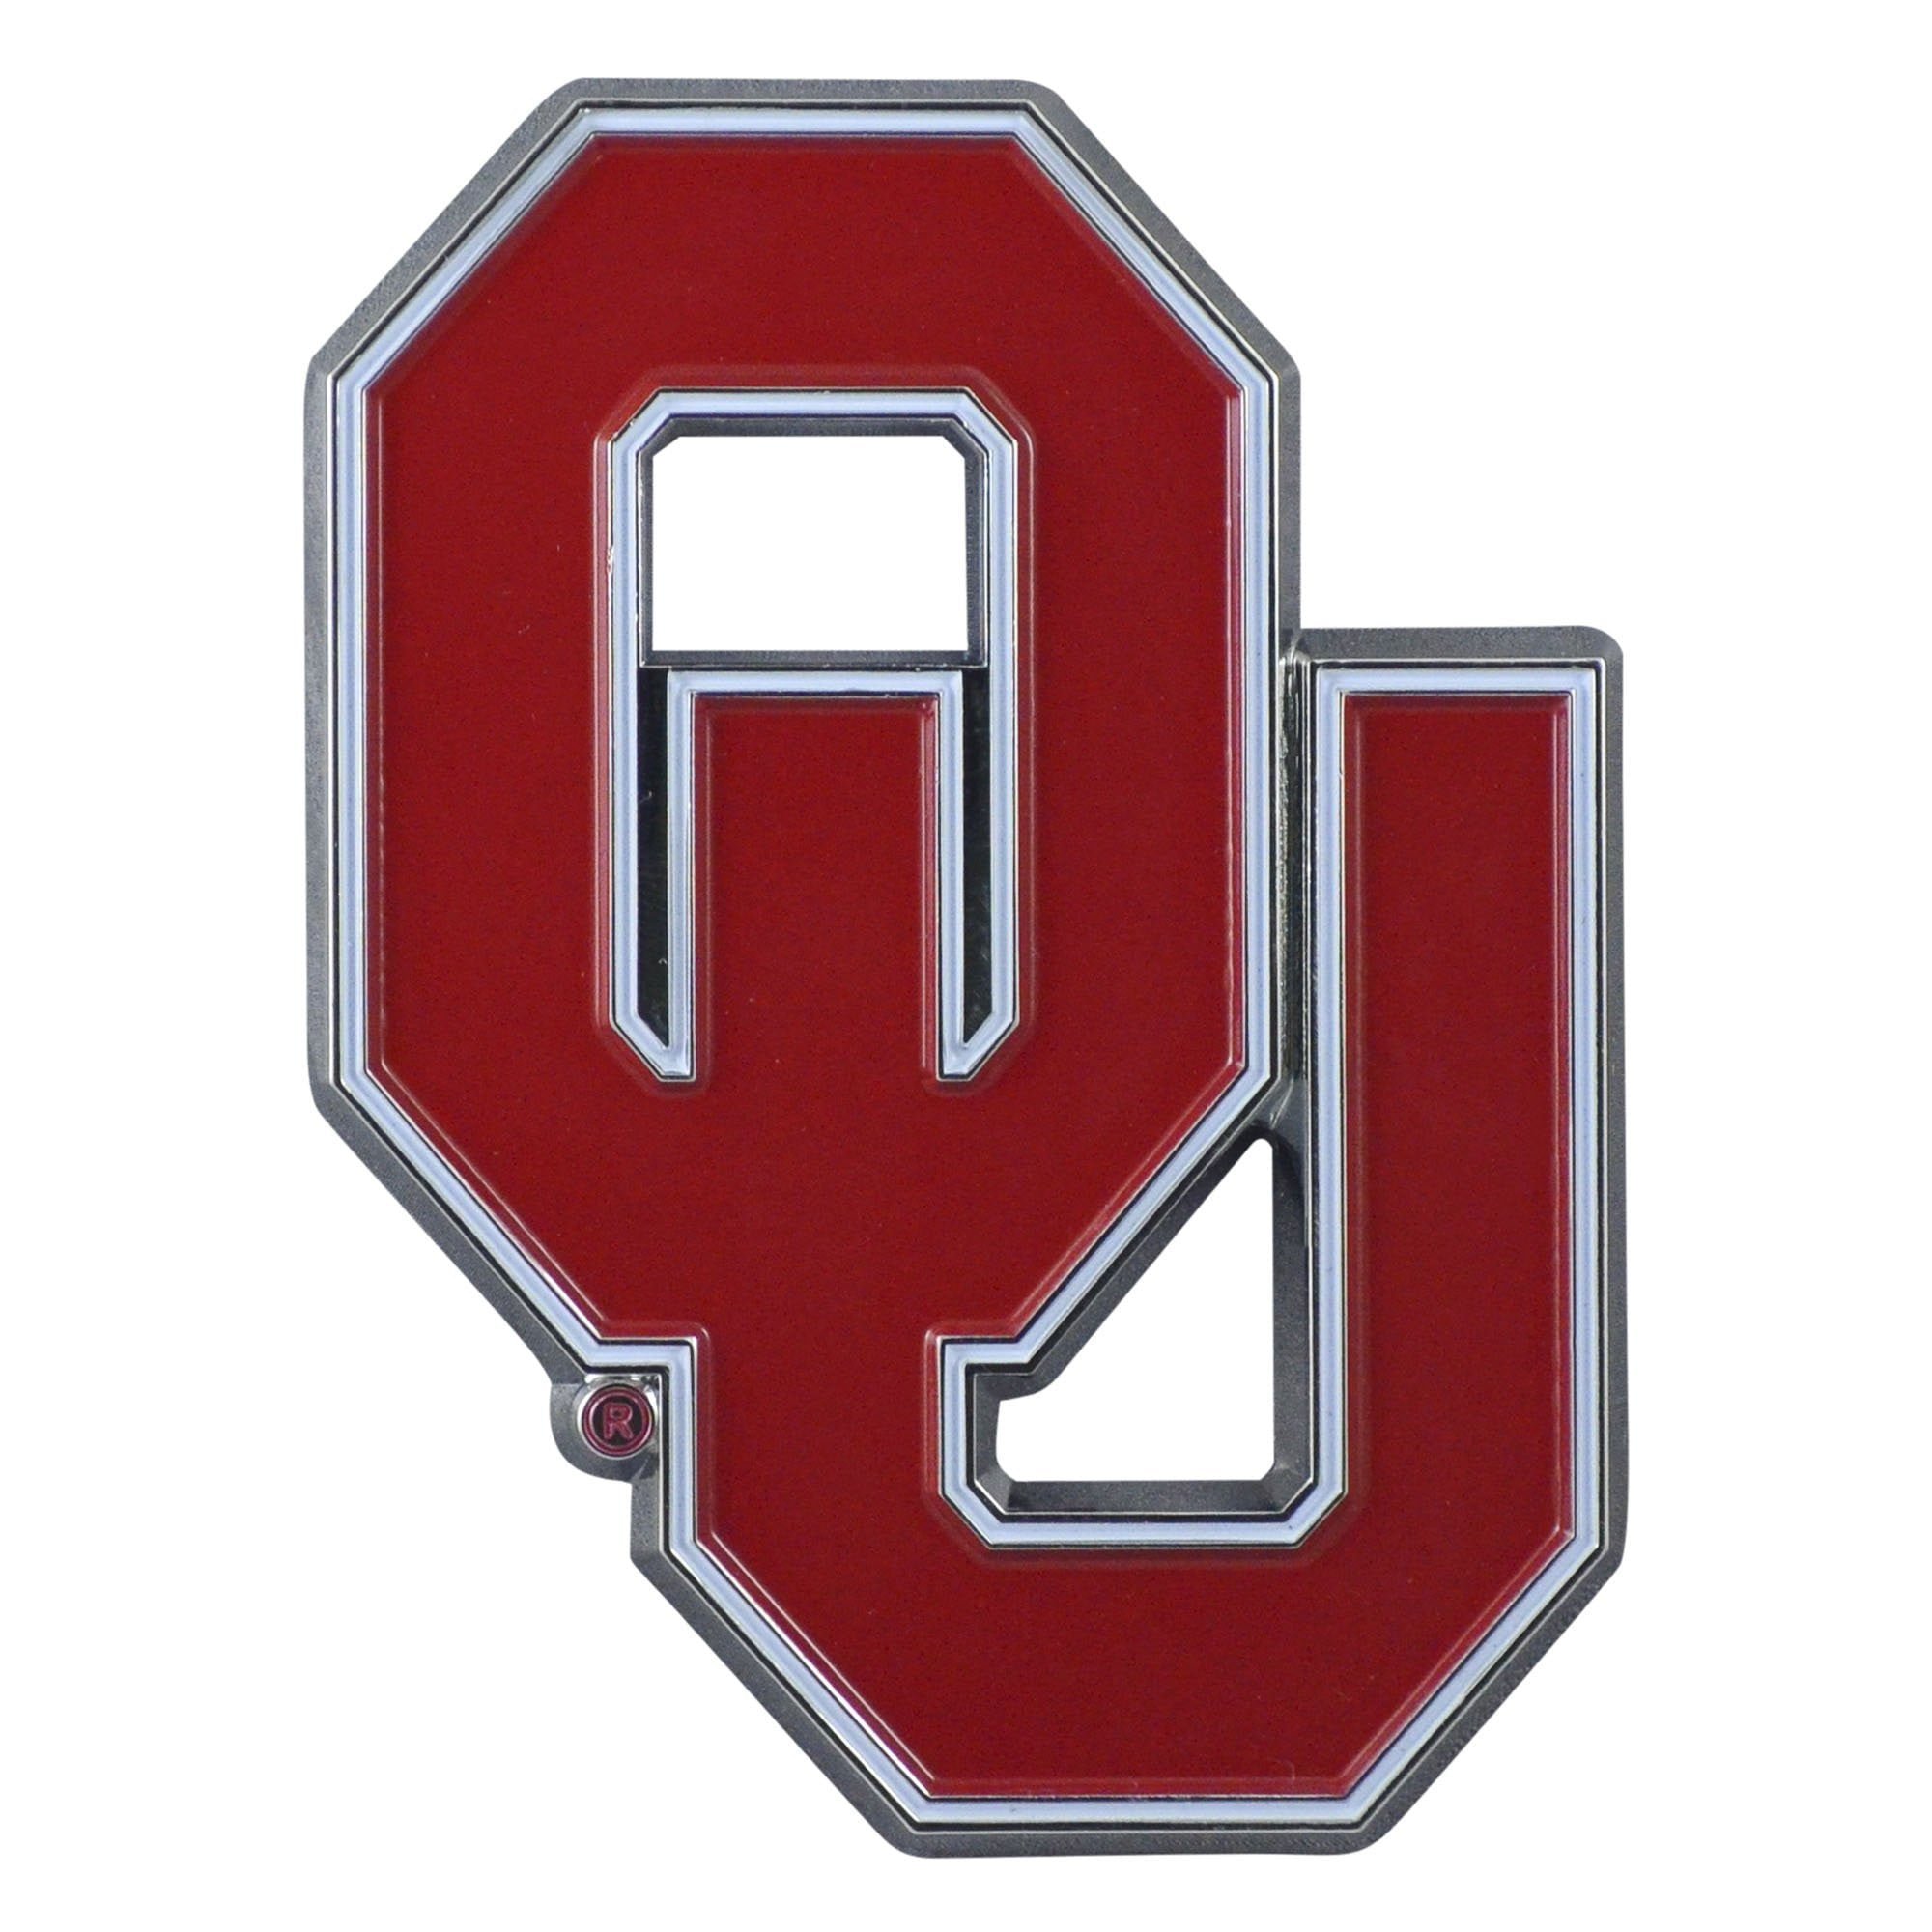 Oklahoma Sooners 3D Color Emblem